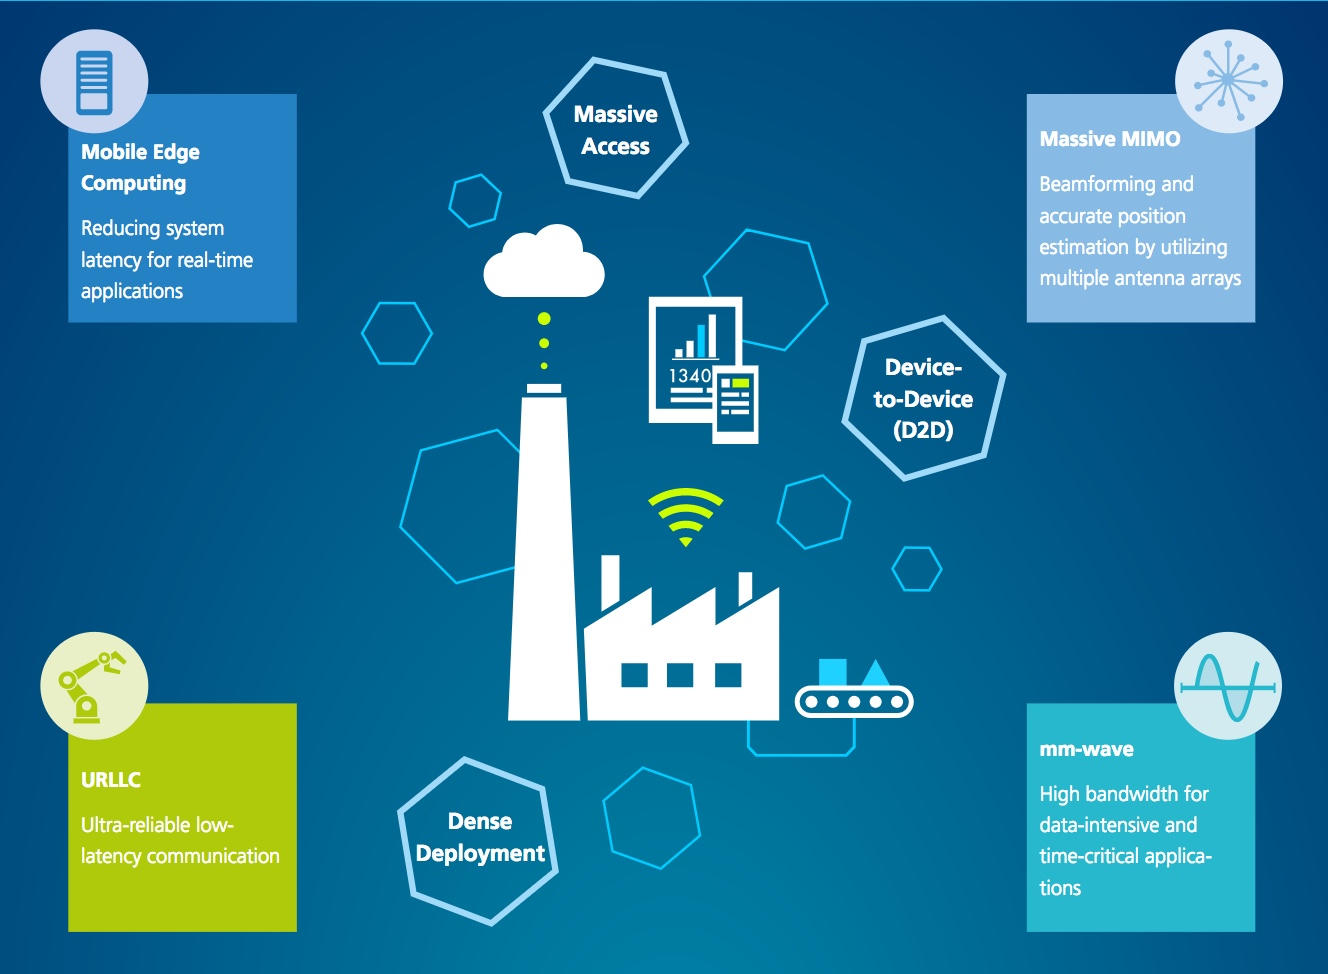 5G, cellular's next step, brings new positioning capabilities : GPS